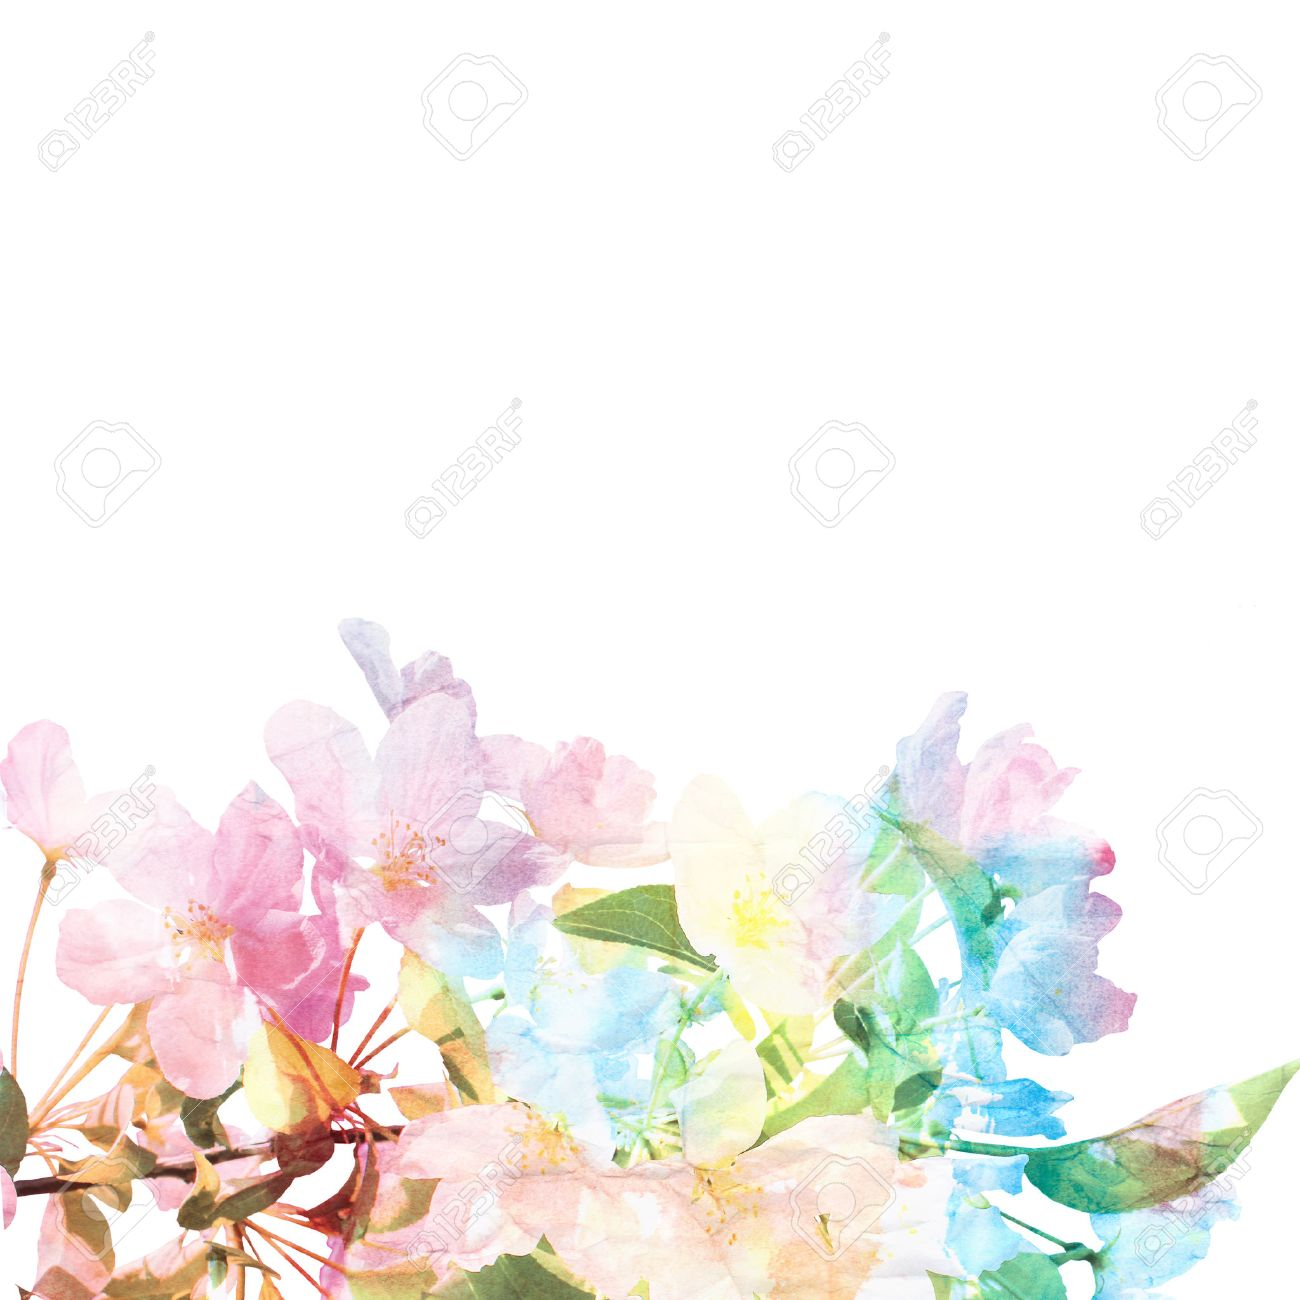 Floral Background Watercolor Floral Bouquet Card Stock Photo 1300x1300